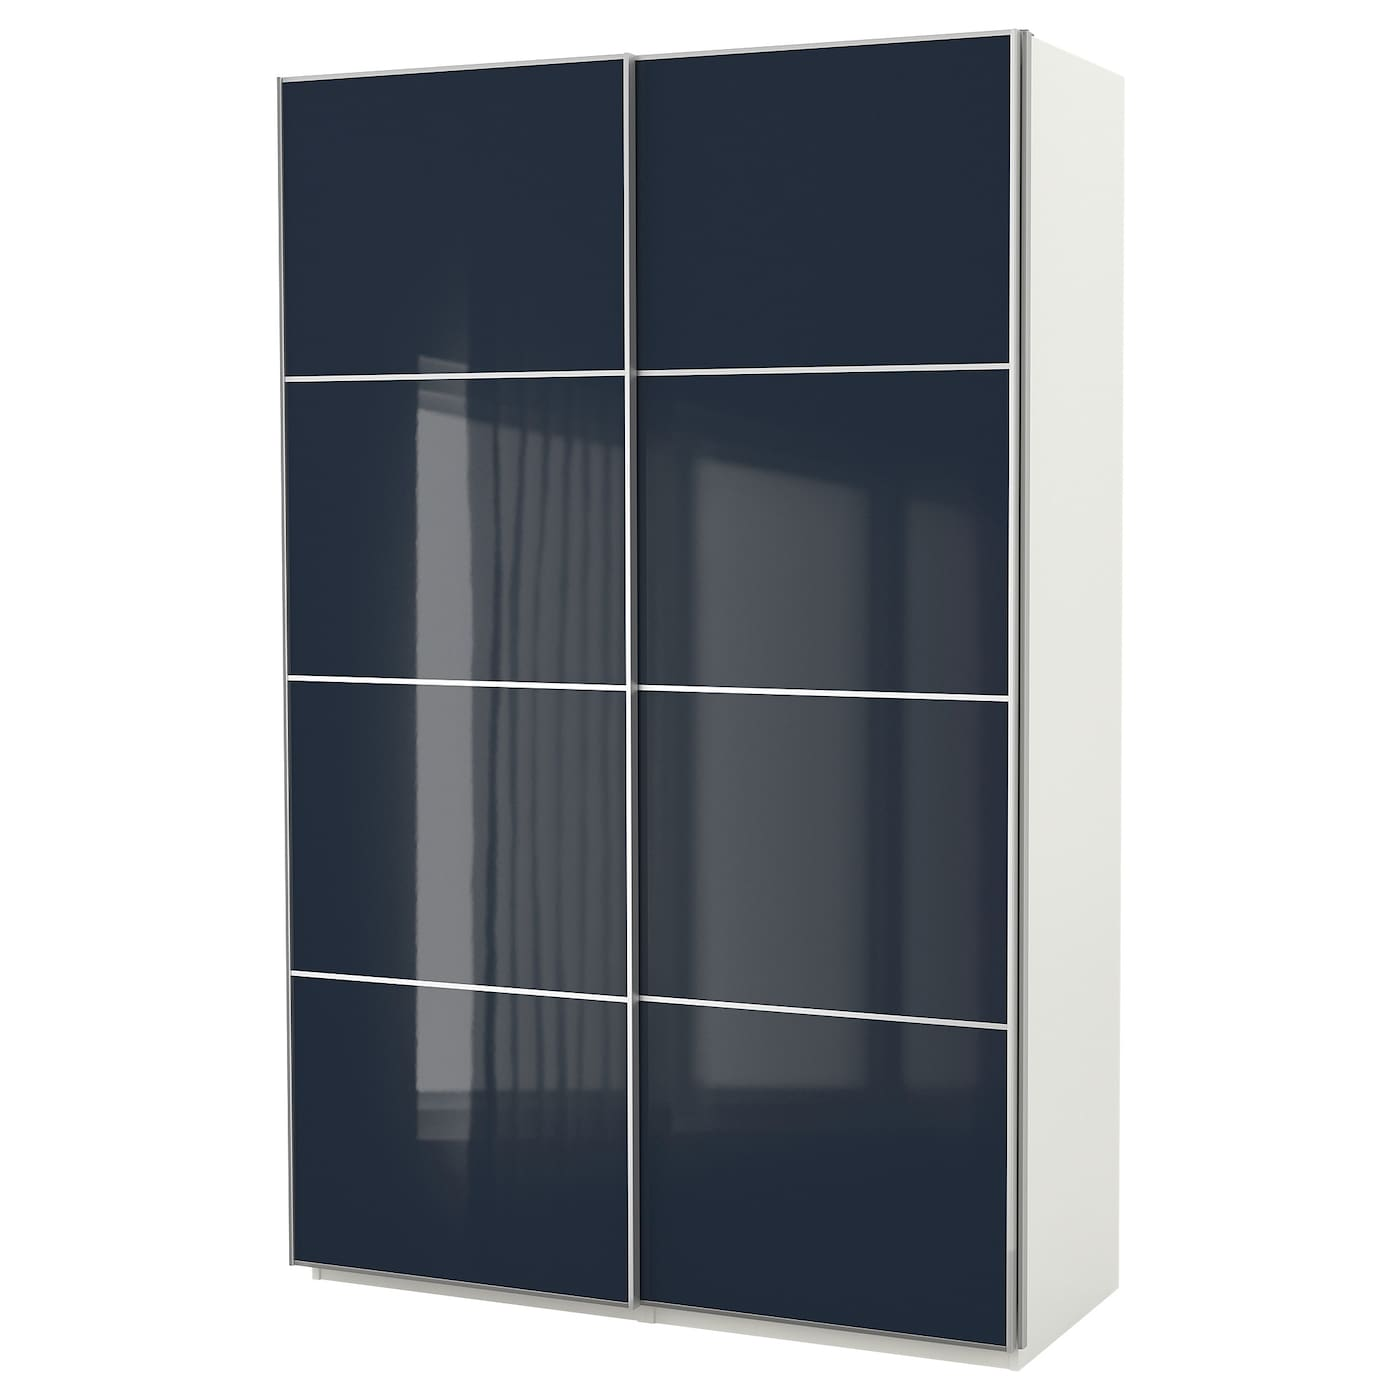 pax armoire penderie blanc hokksund brillant bleu noir 150 x 66 x 236 cm ikea. Black Bedroom Furniture Sets. Home Design Ideas